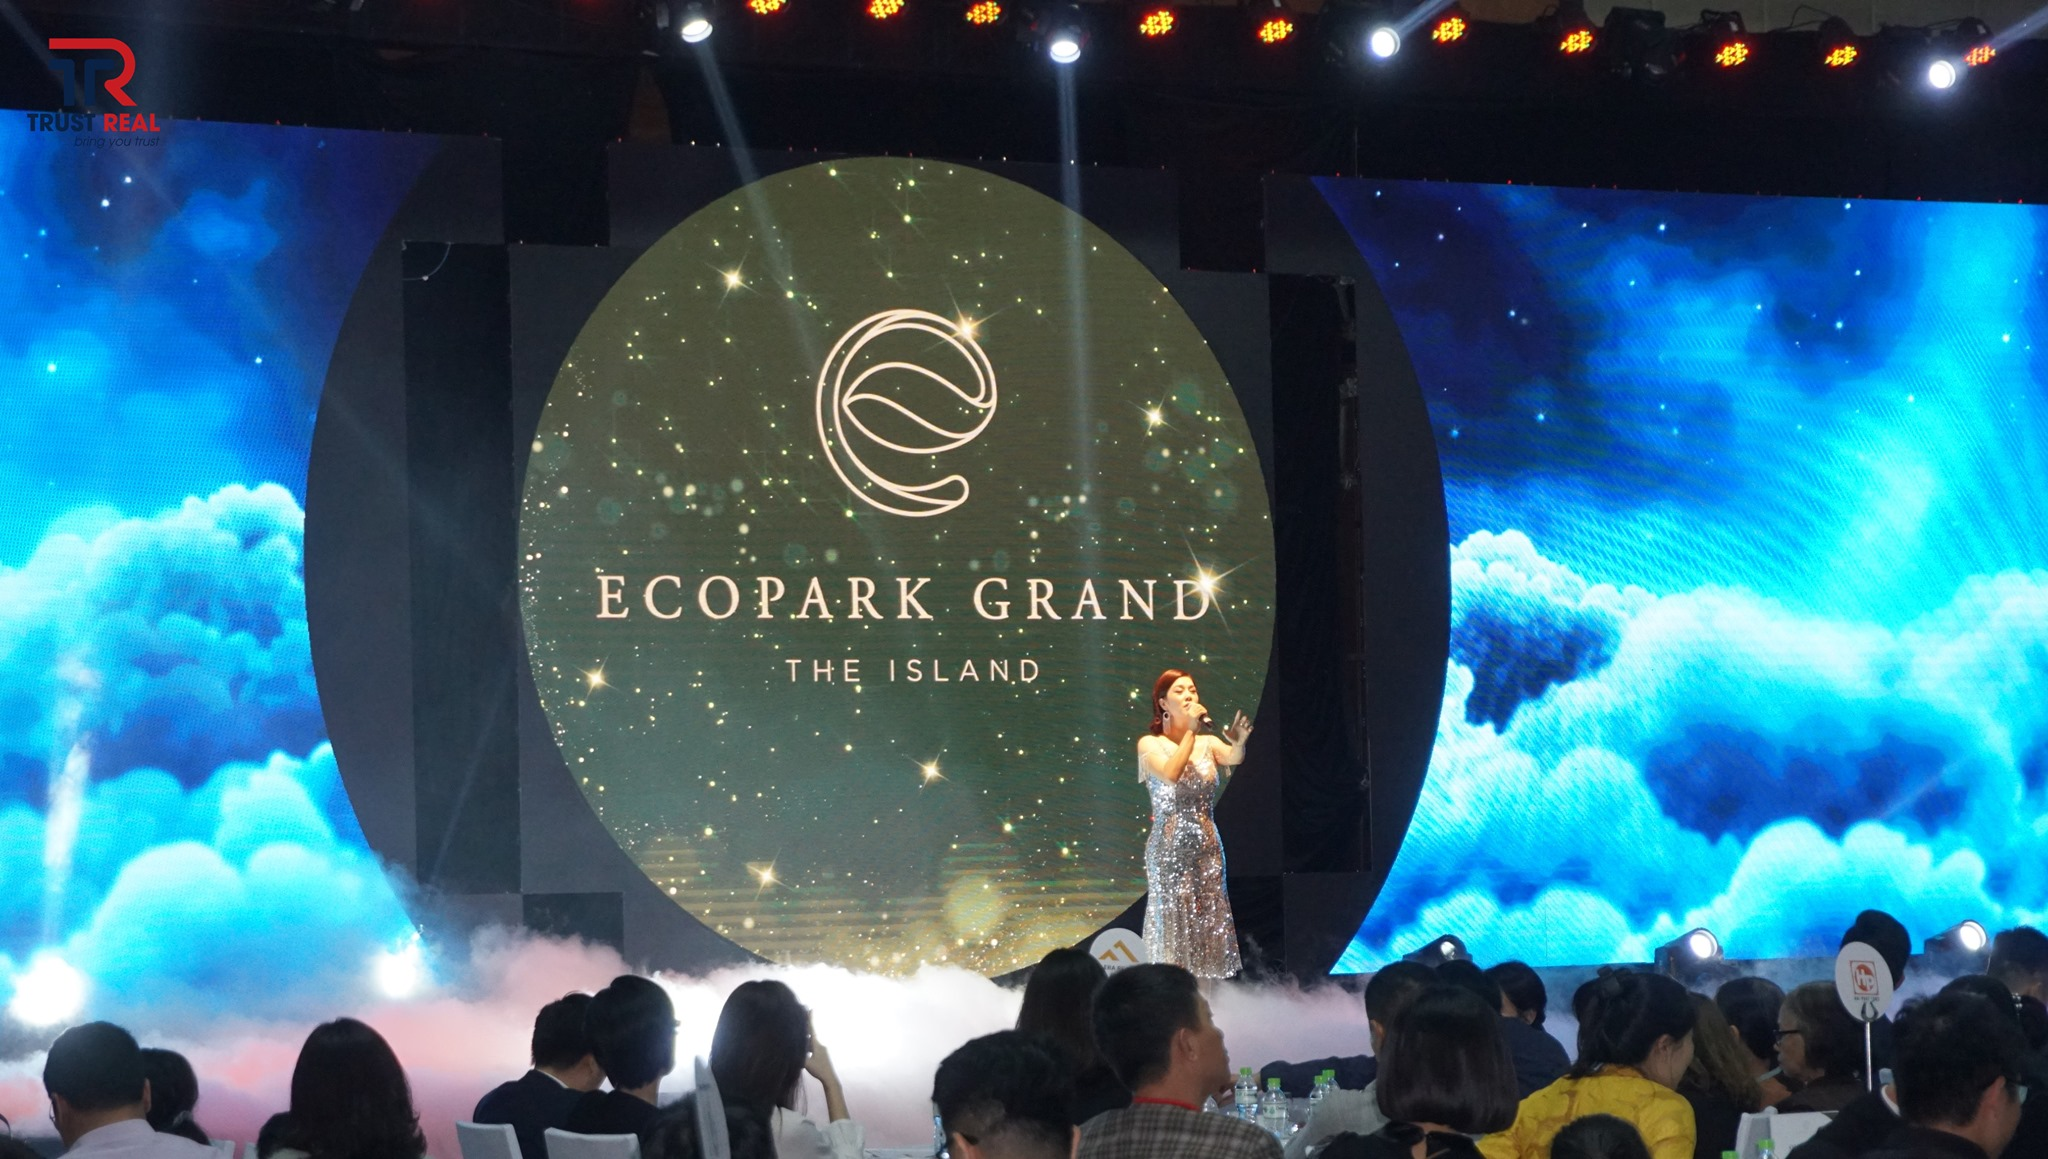 ecopark grand the island 1